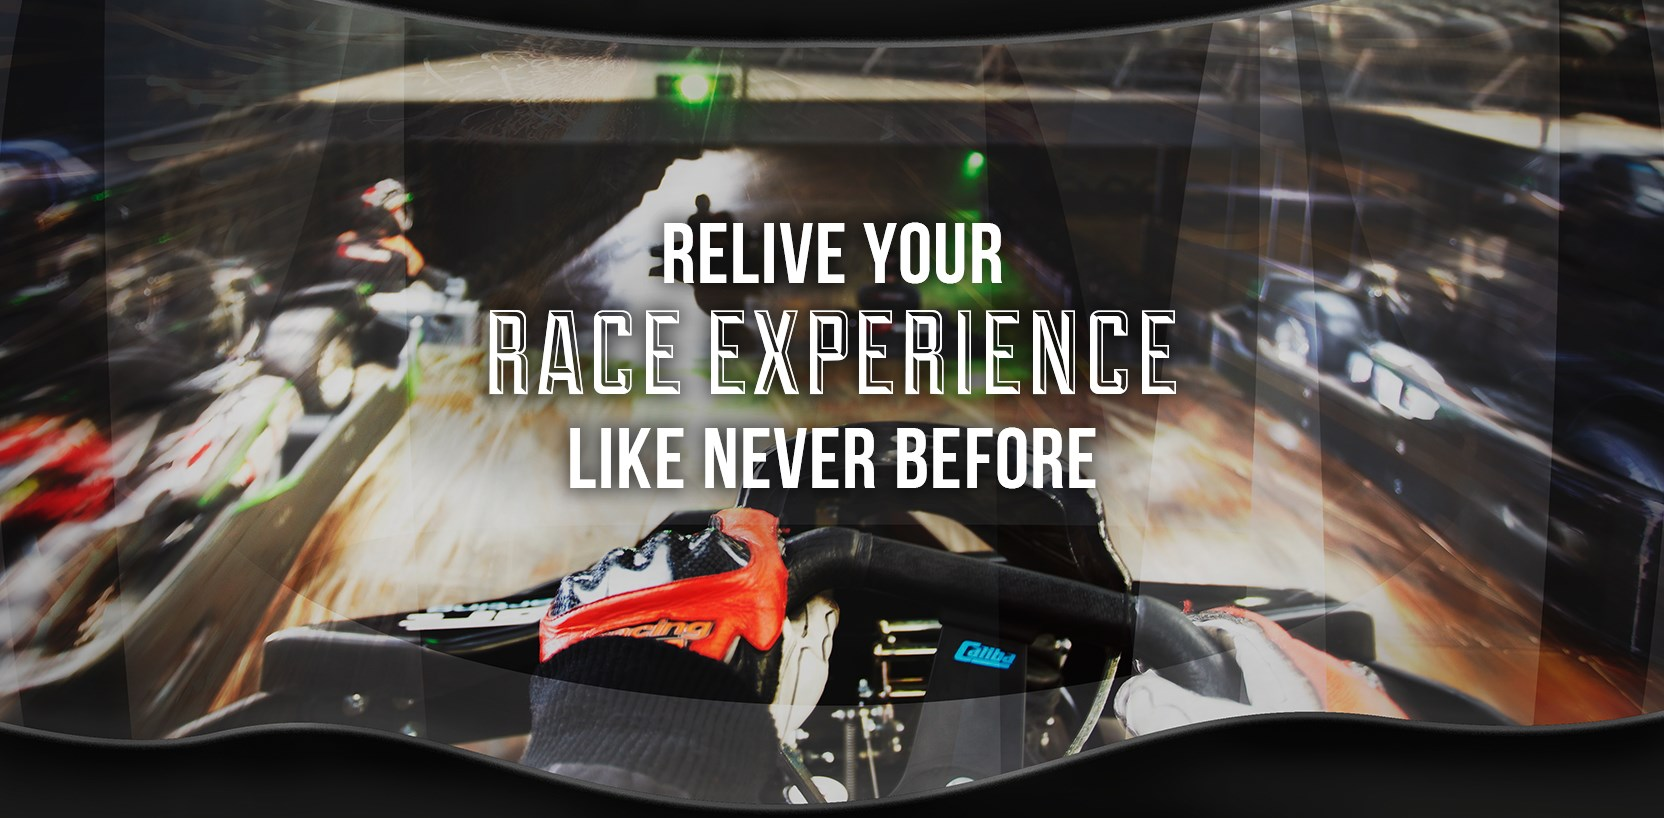 GO KARTING OFFERS - HELMET CAMERA HIRE